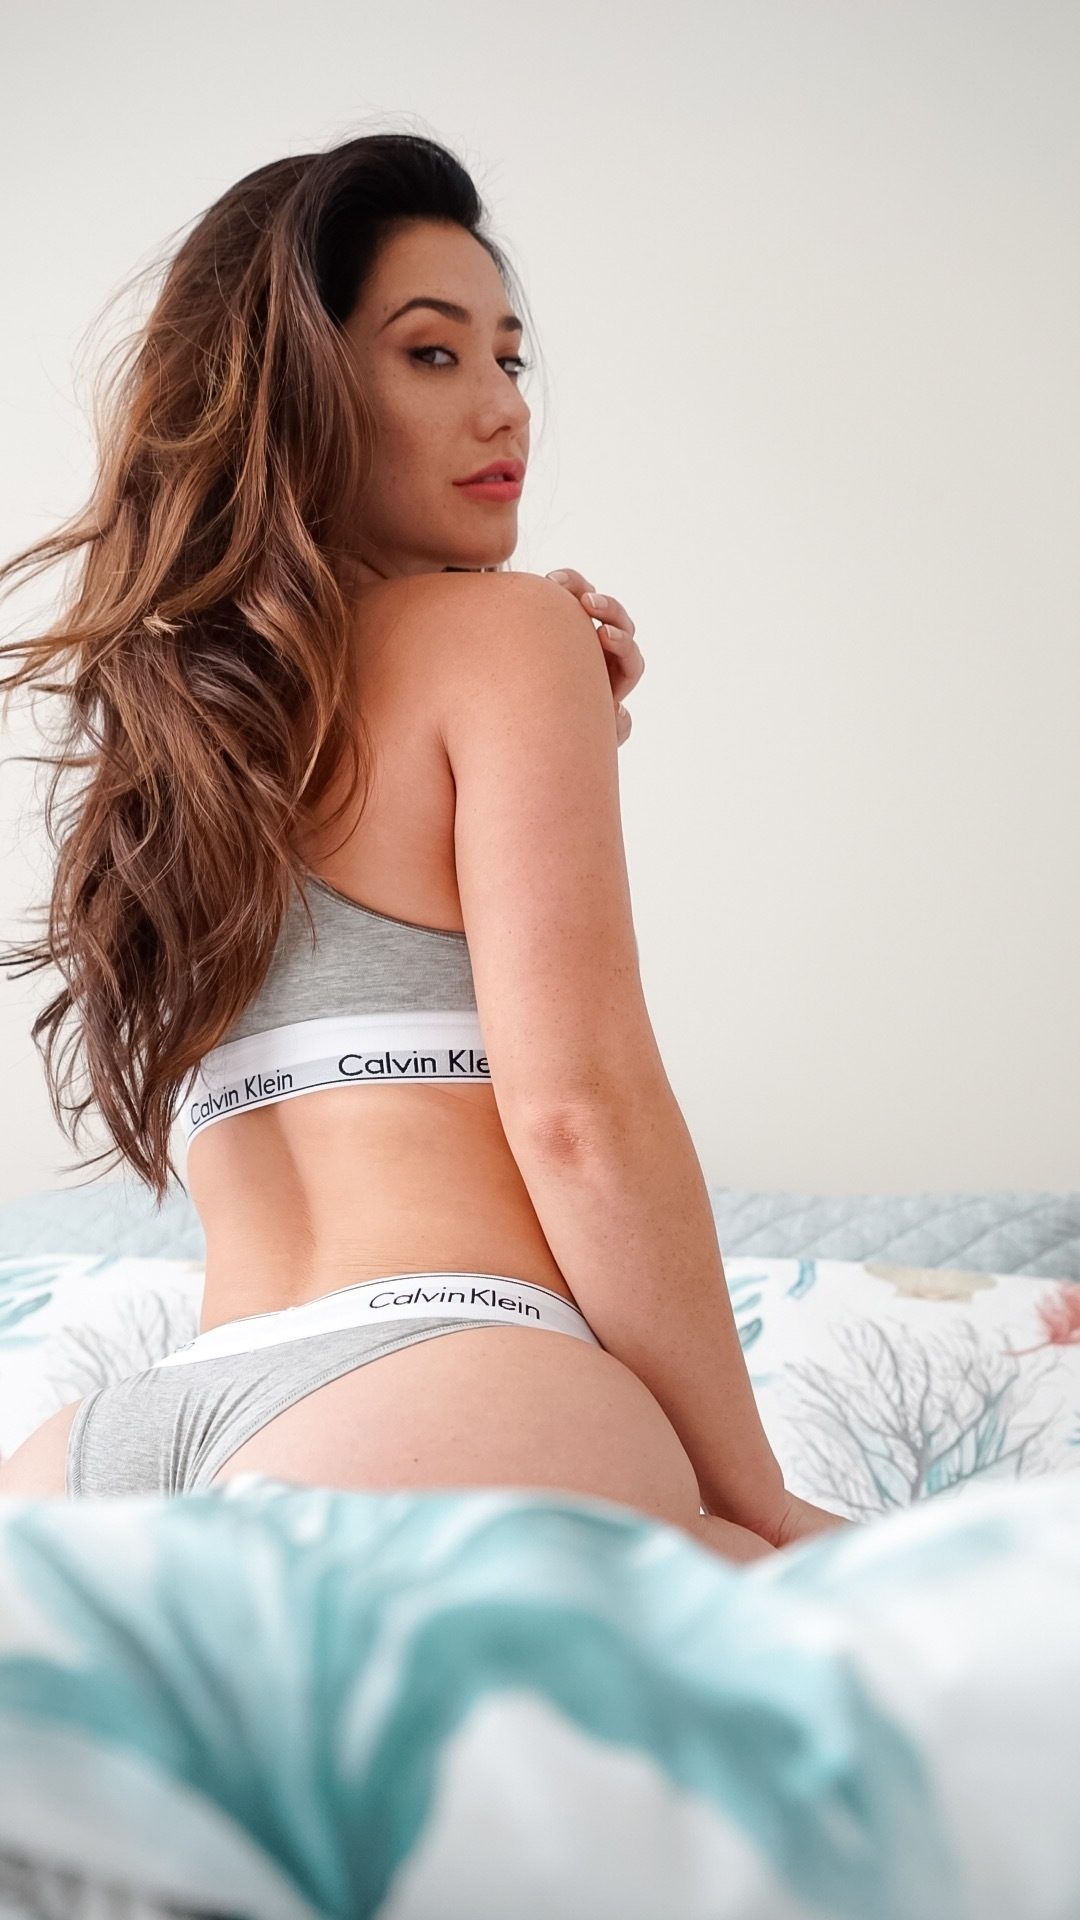 eva lovia galleries